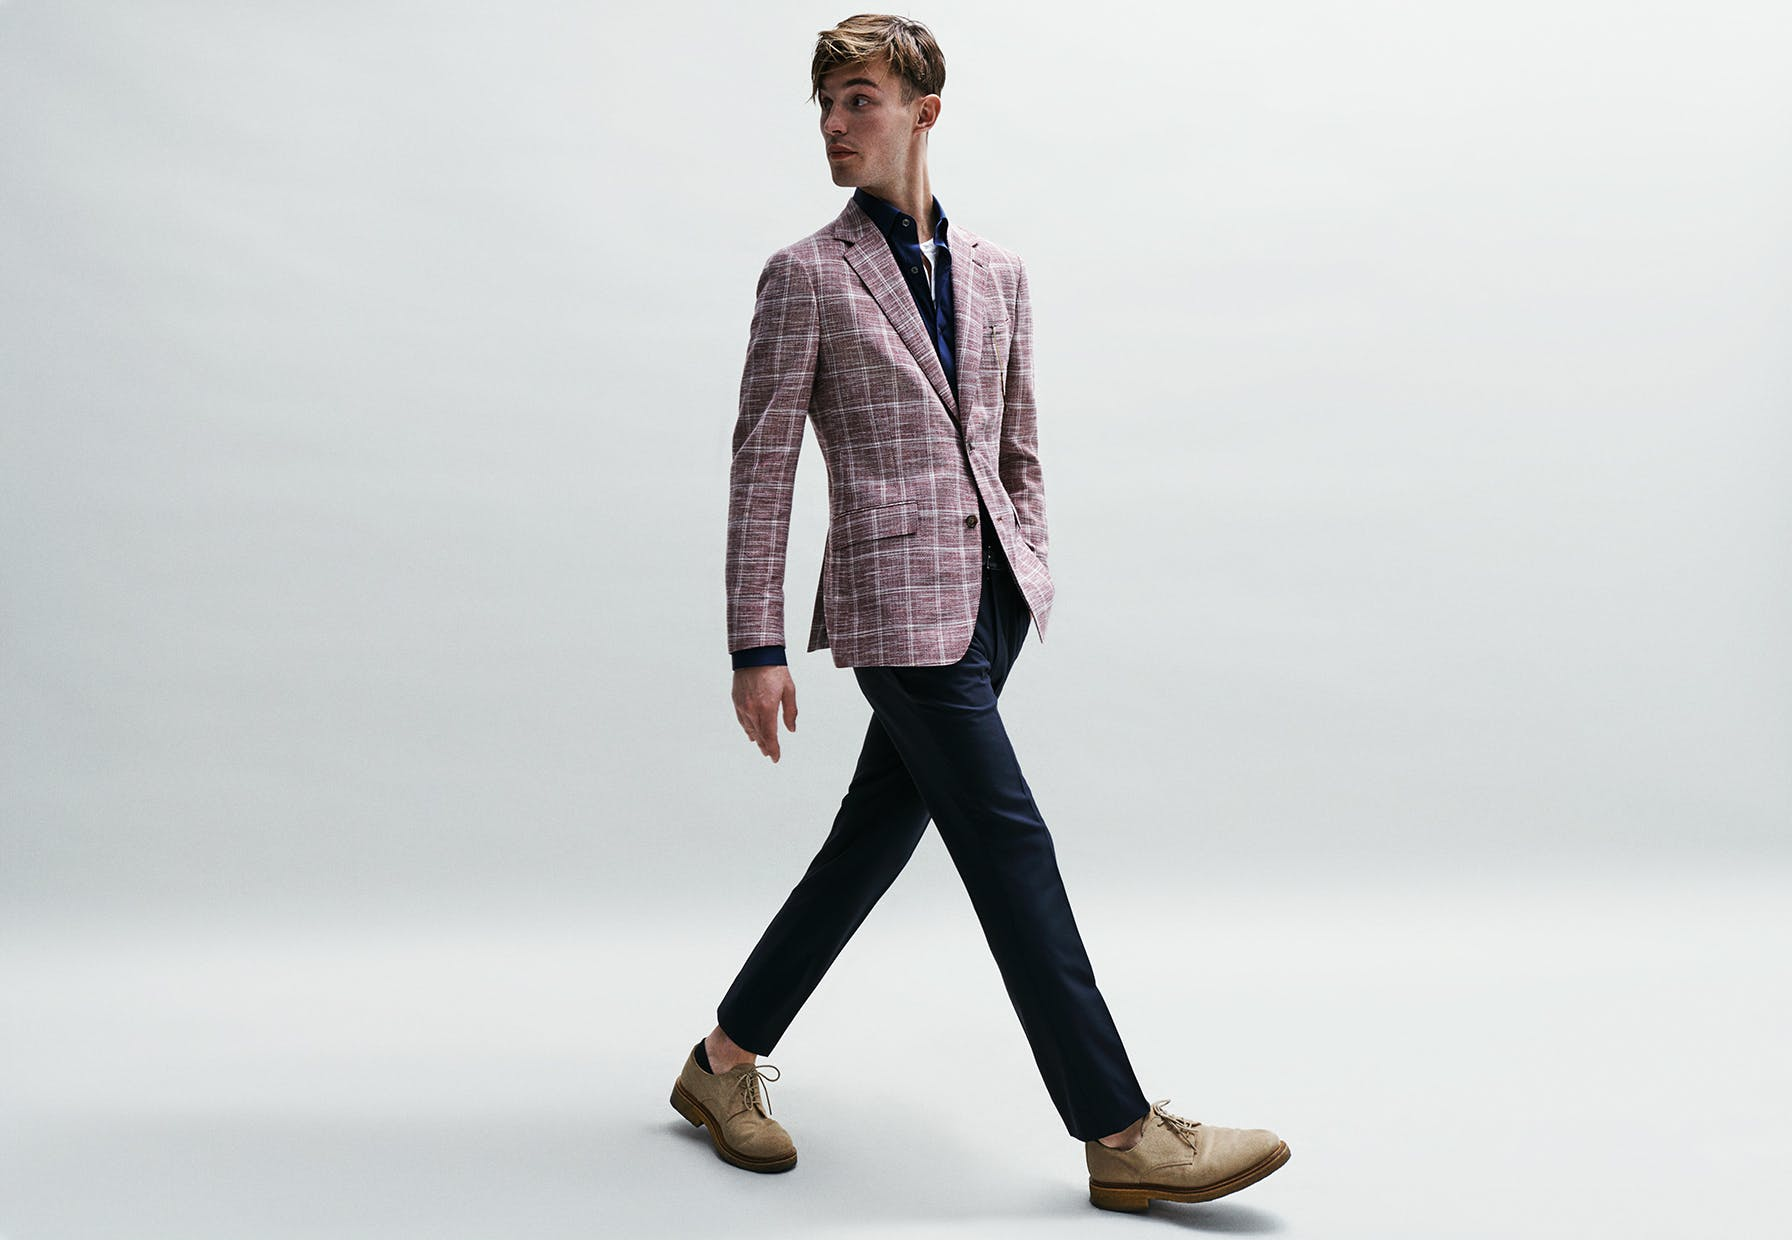 A blazer doesn't have to be stuffy; choose one with subtle color. This patterned option is in a muted red, best complemented by solid navy dress pants and shirts.